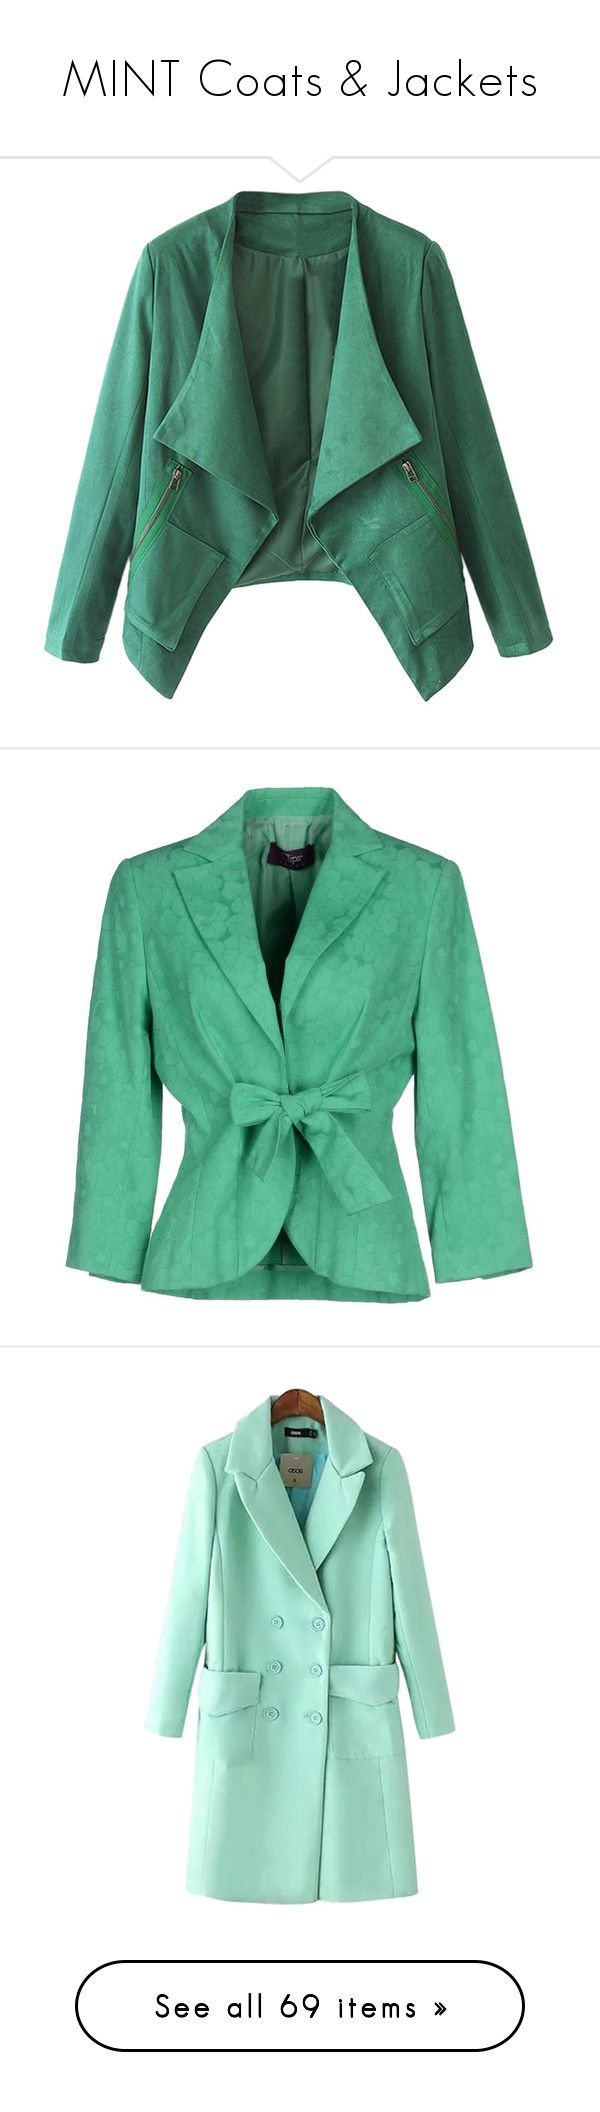 """MINT Coats & Jackets"" by franceseattle ❤ liked on Polyvore featuring outerwear, jackets, blazers, coats, green, slim fit jackets, green blazer jacket, slim blazer jacket, green blazer and blazer jacket"